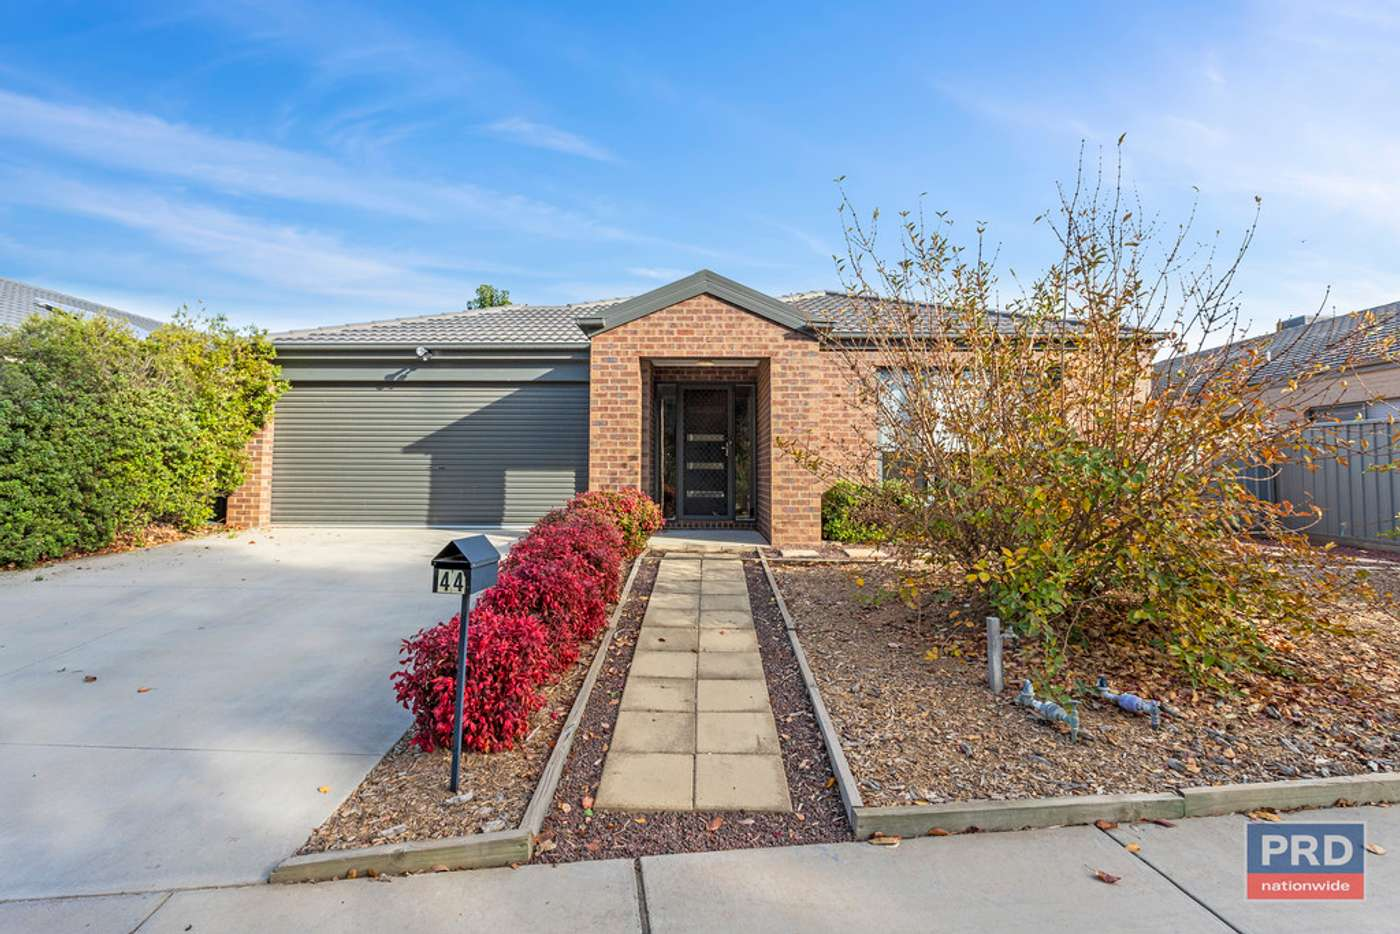 Main view of Homely house listing, 44 The Boulevard, White Hills VIC 3550